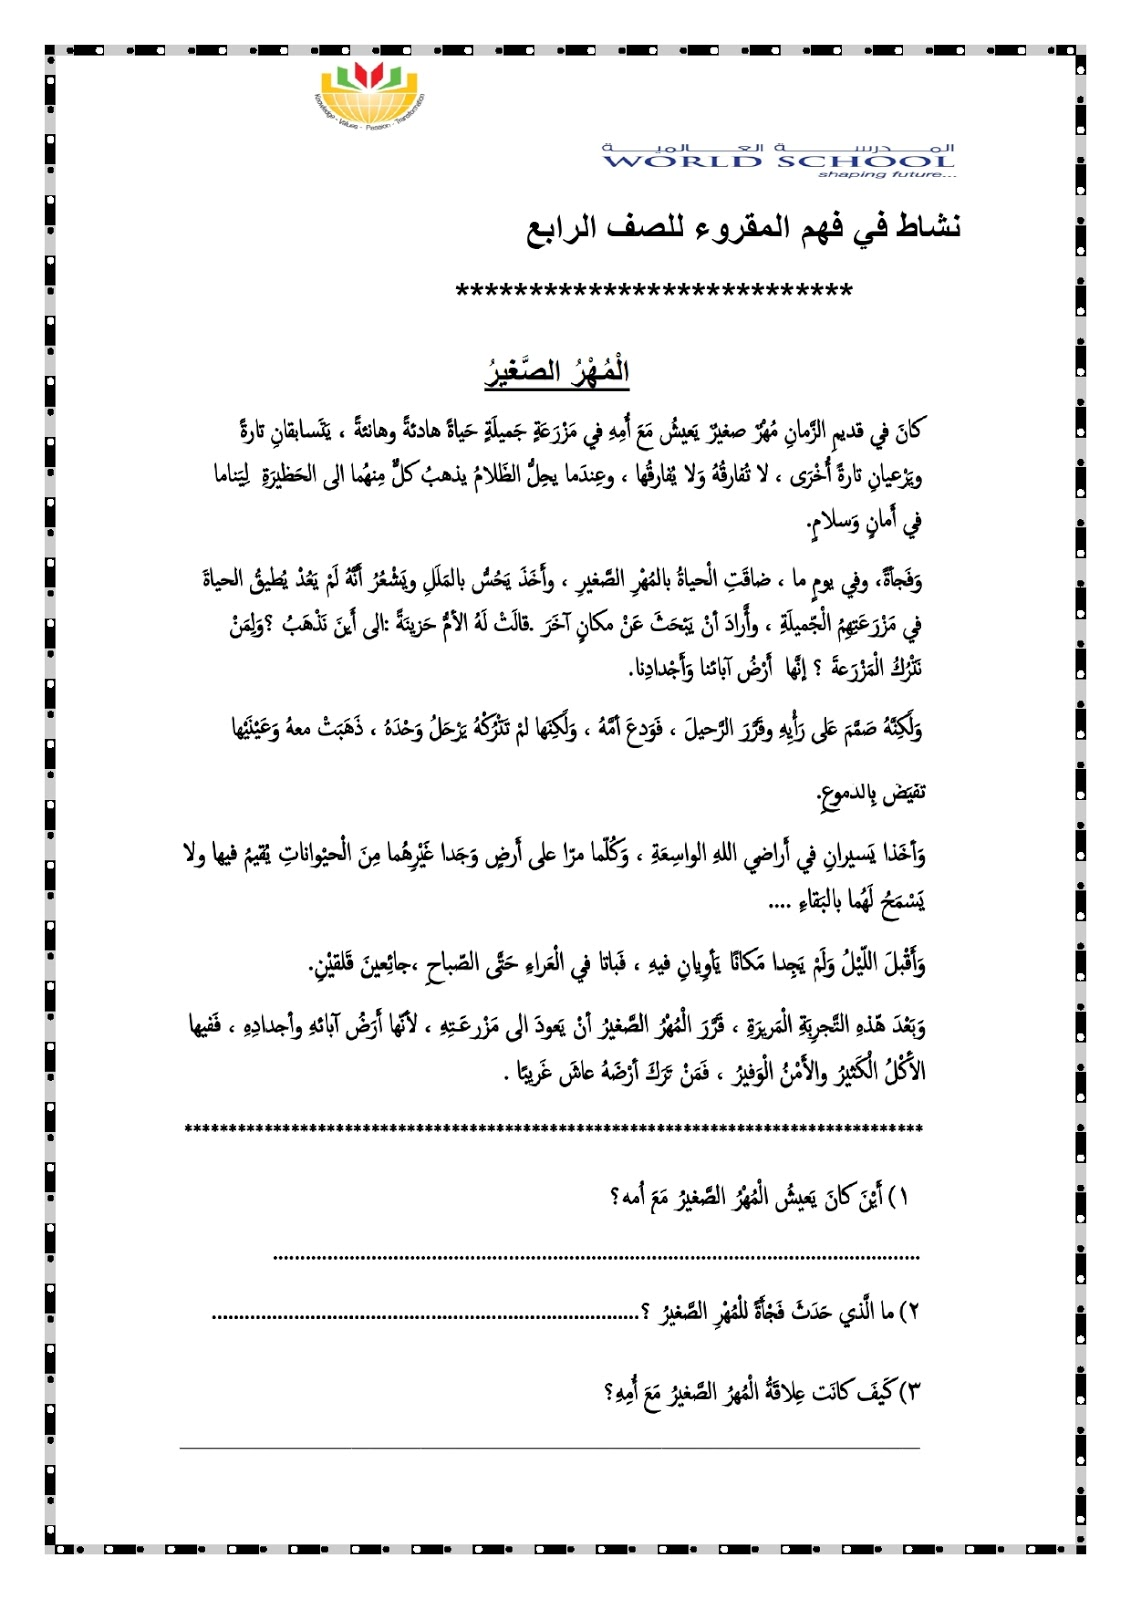 hight resolution of Third Grade Arabic Worksheet   Printable Worksheets and Activities for  Teachers